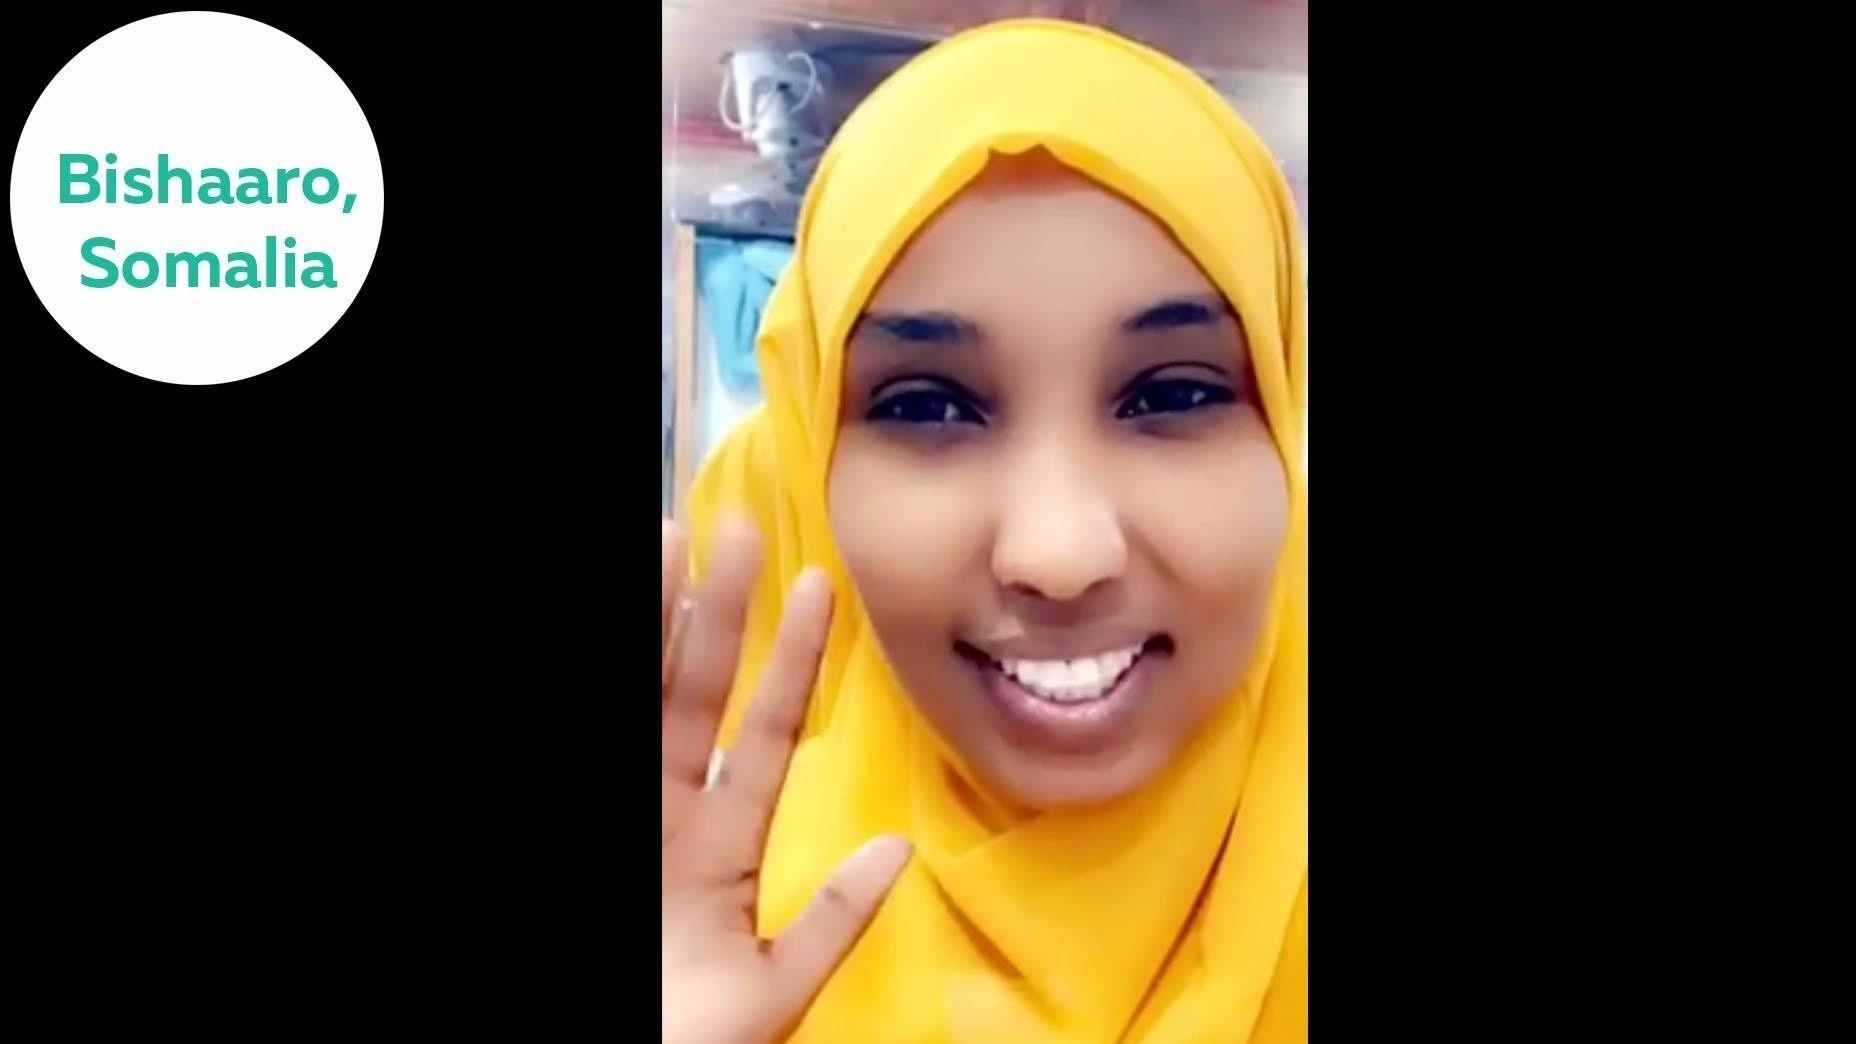 Bishaaro from Somalia cshares her success story after joining the English-Everyday speaking course